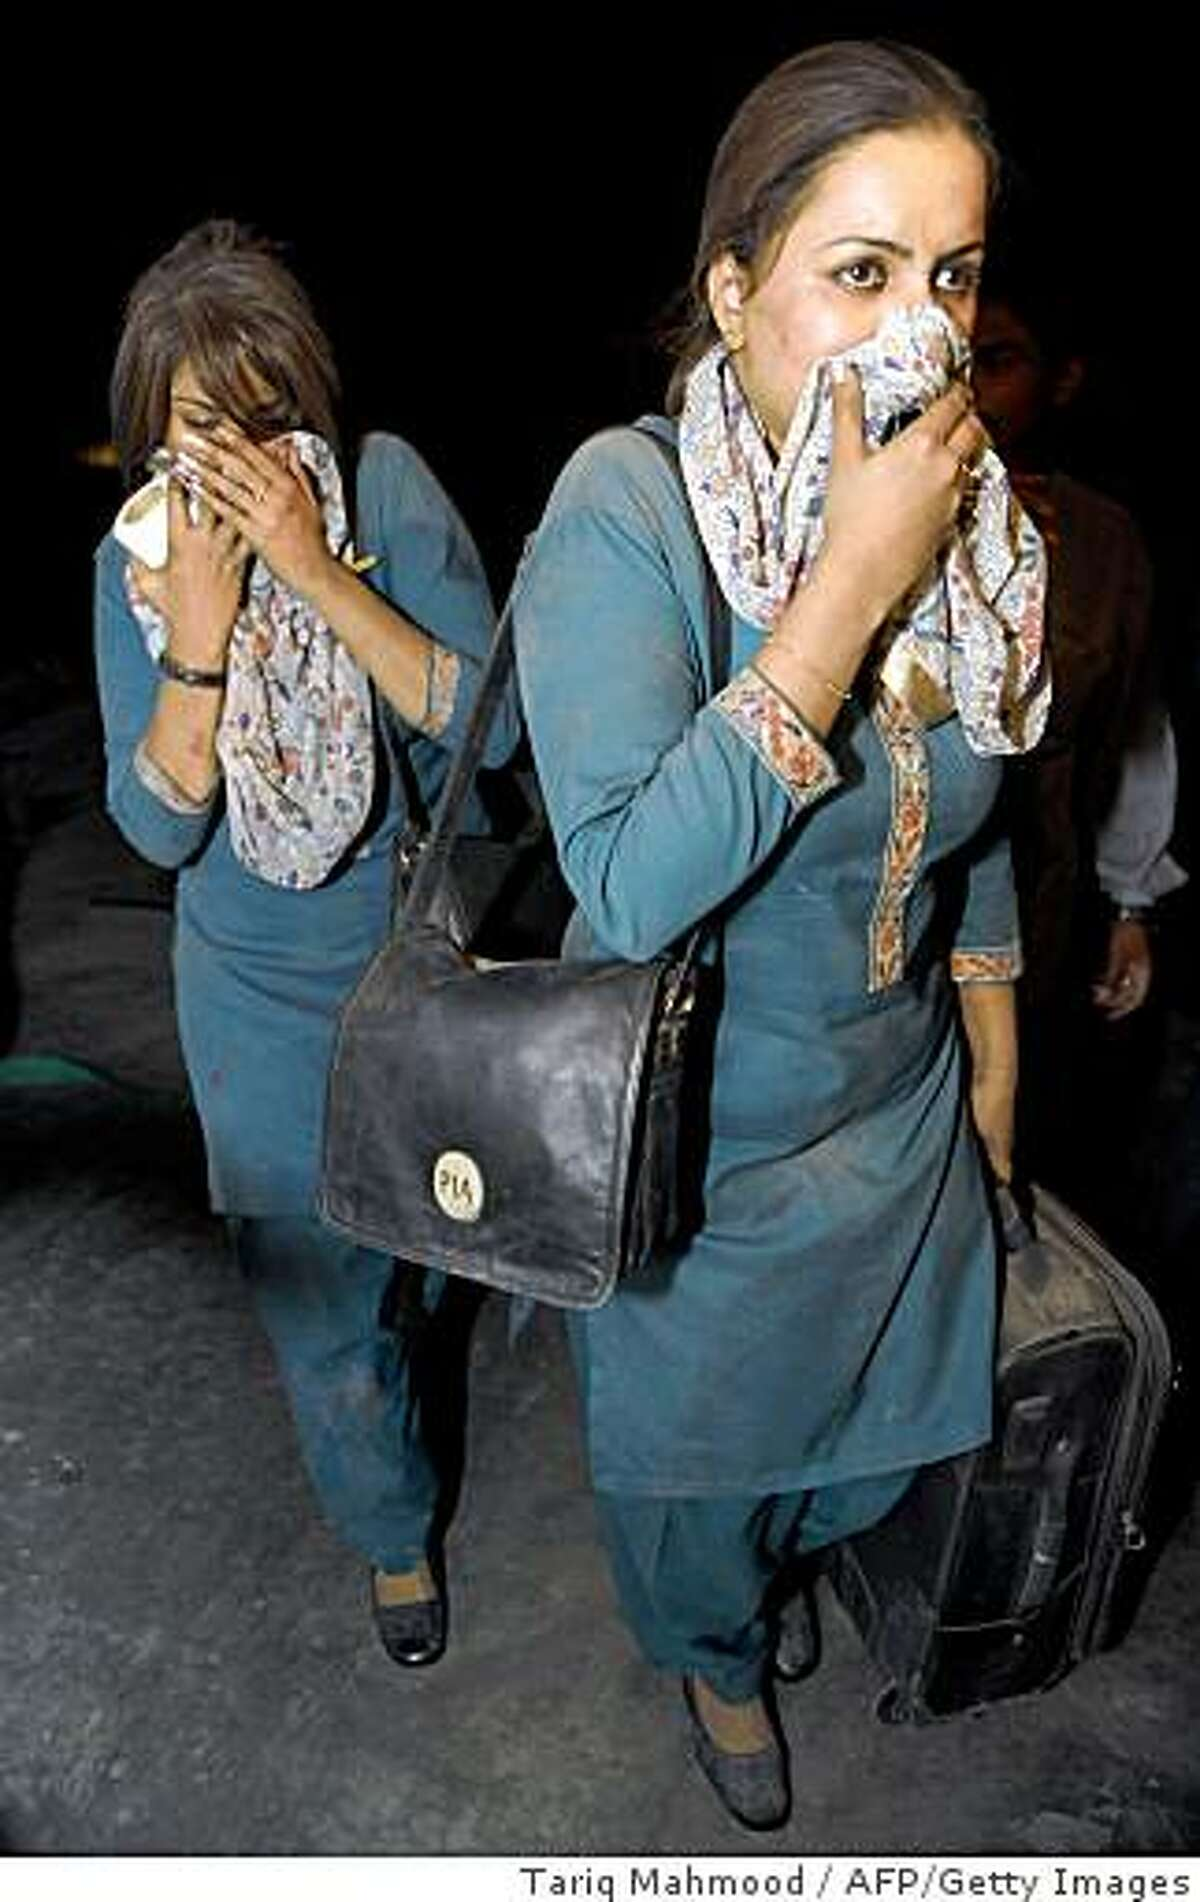 Air hostesses of Pakistan International Airline leave from a five-star hotel after a bomb blast in Peshawar on June 10, 2009. At least 11 people were killed and 46 injured in a huge bomb blast at the five-star Pearl Continental hotel in the northwestern Pakistani city of Peshawar, a police official said. The bomb was hidden in a delivery truck, police and officials said, and was driven up to the five-star Pearl Continental hotel in the high-security Khyber Road area of Peshawar and detonated outside, causing massive devastation.AFP PHOTO/ Tariq MAHMOOD (Photo credit should read TARIQ MAHMOOD/AFP/Getty Images)